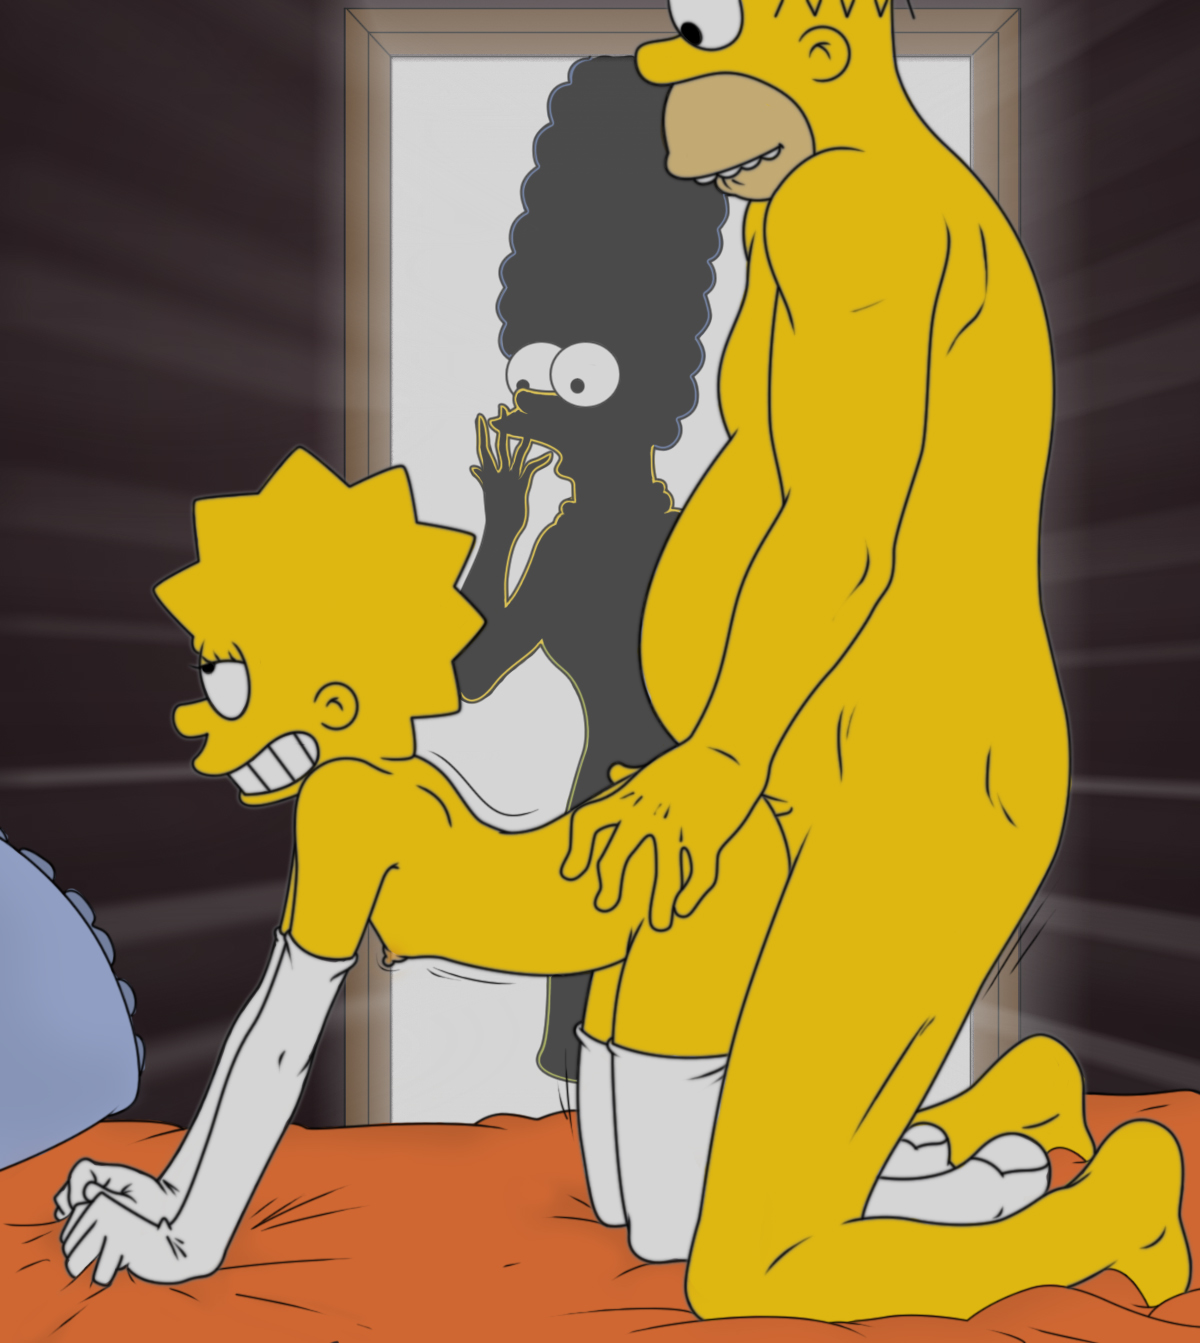 Site, The simpsons anal sex useful topic